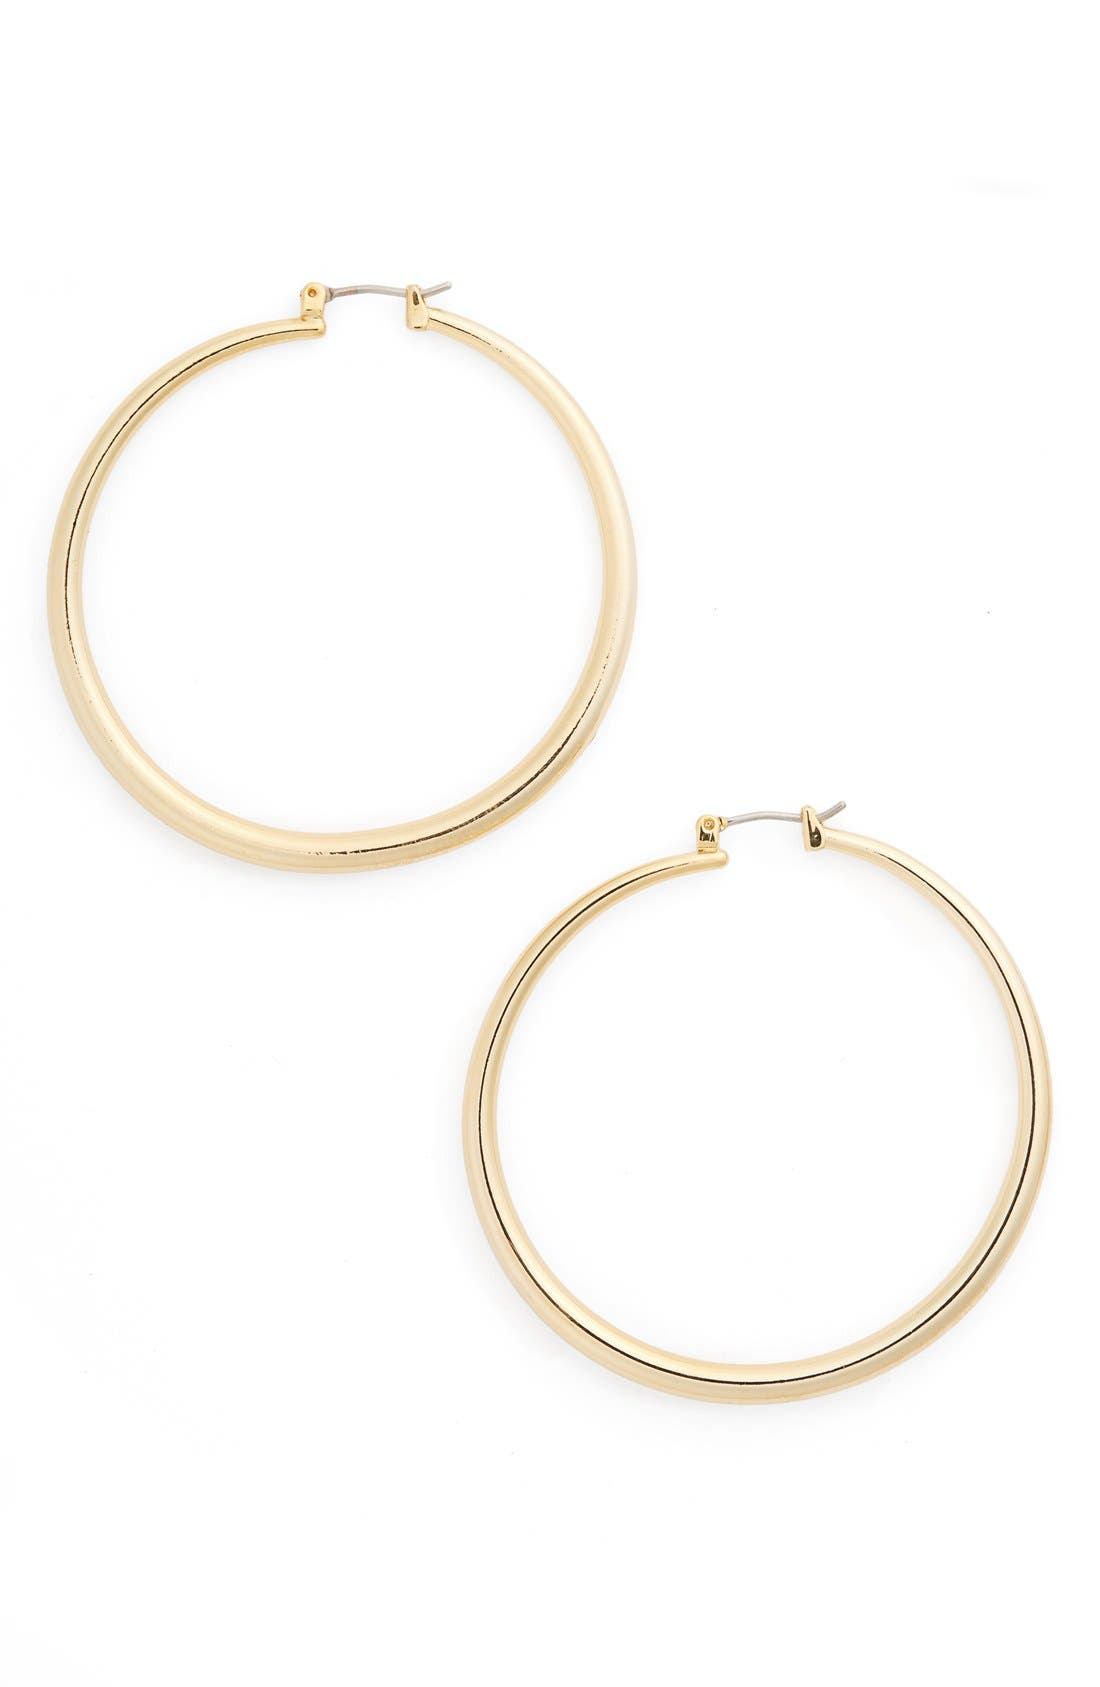 Main Image - Nordstrom Thick Medium Hoop Earrings